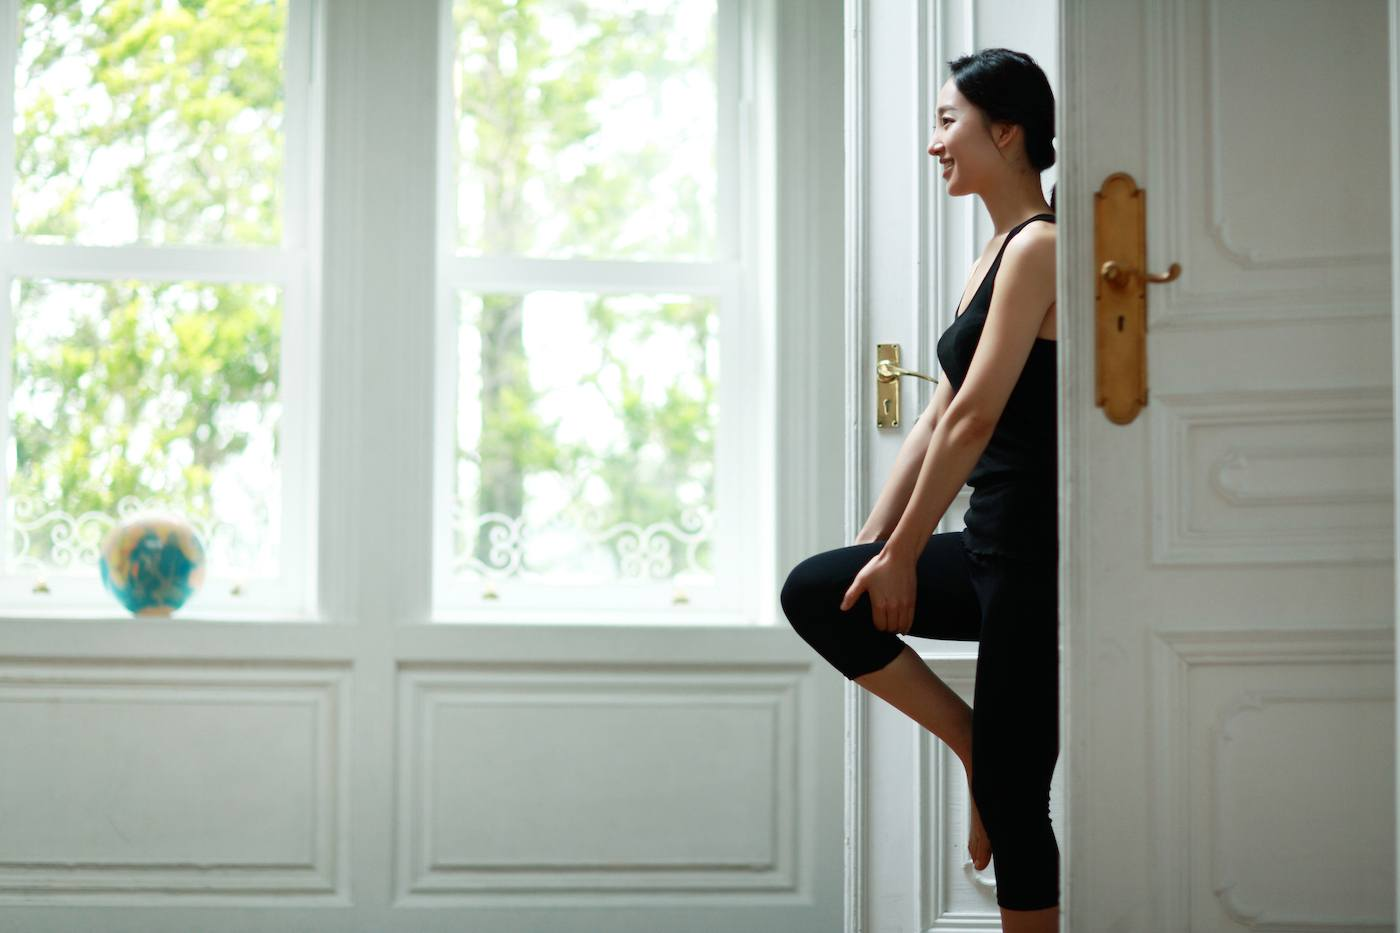 These head-to-toe doorway stretches are the next best thing to a full-body massage